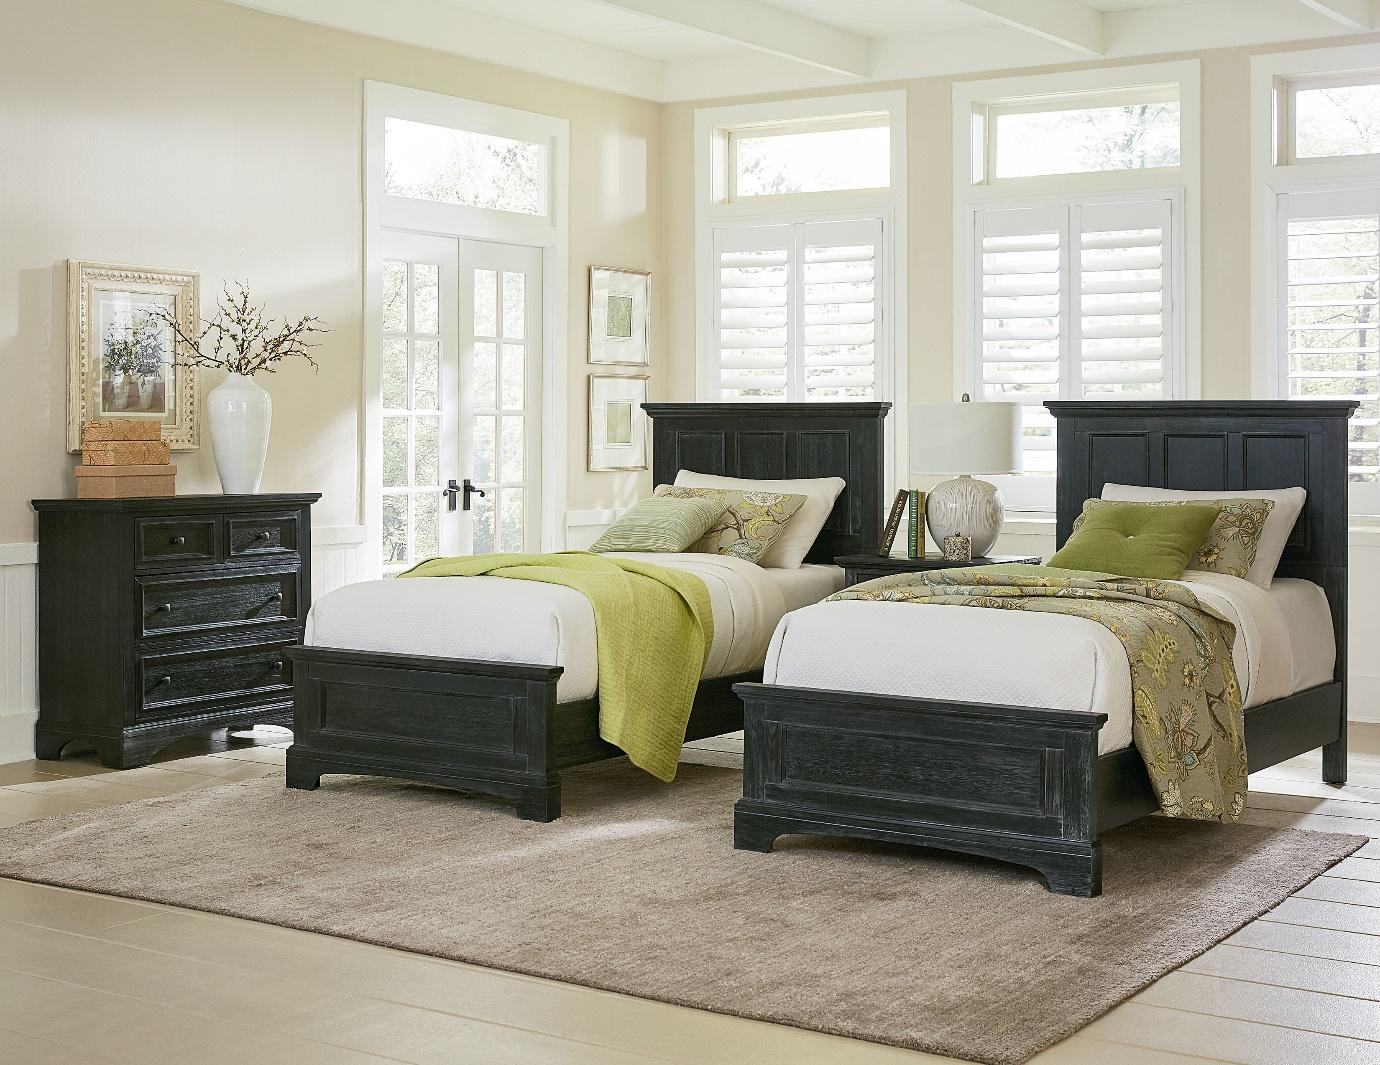 farmhouse queen bedroom set